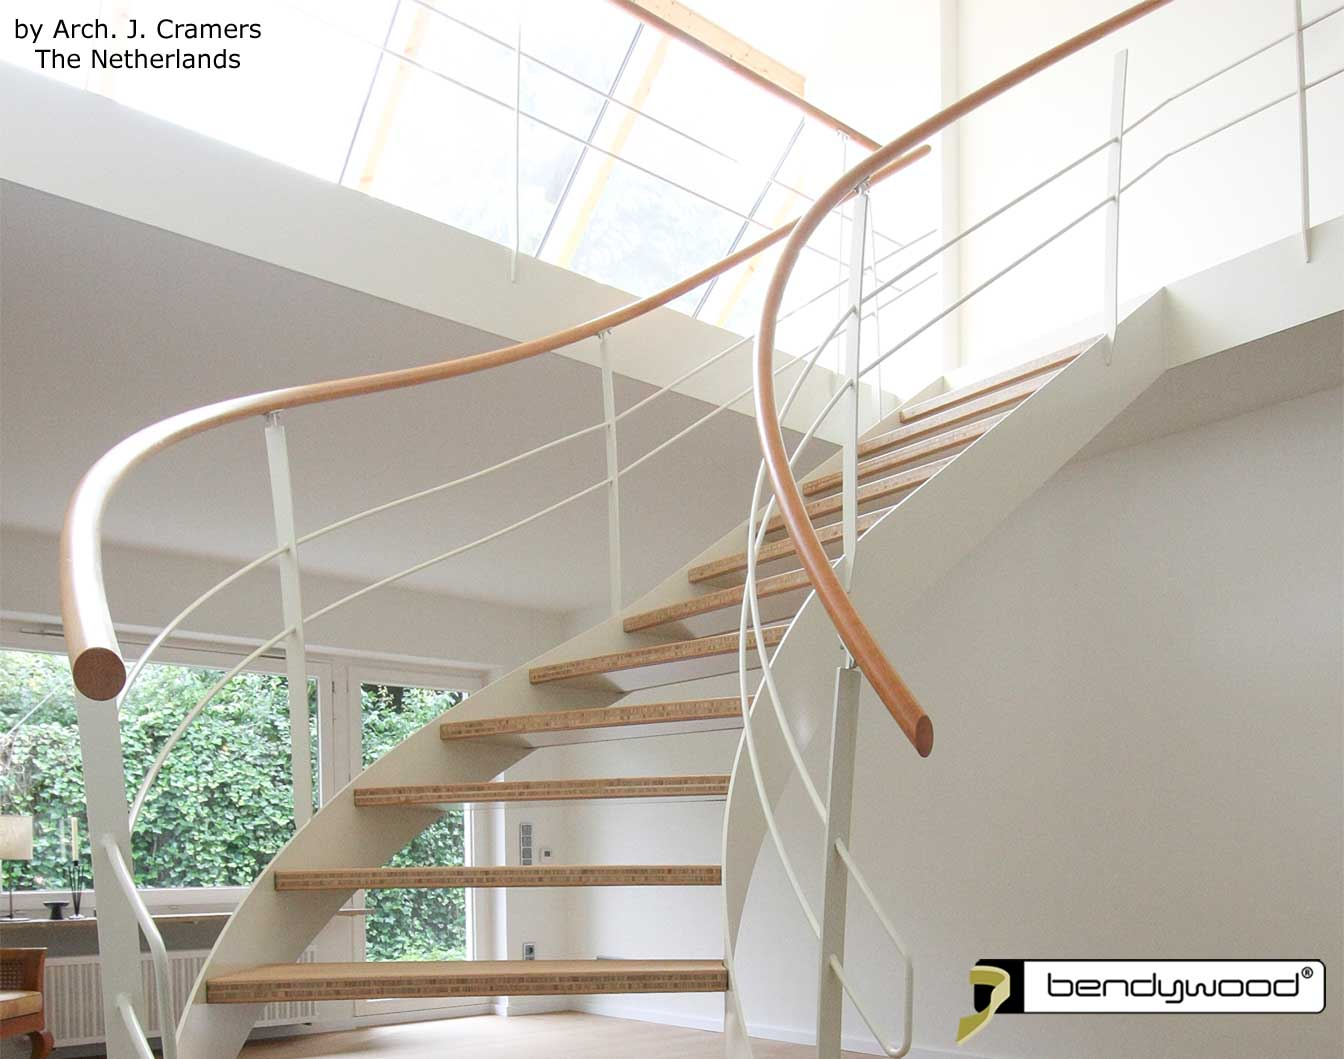 Bendywood® handrail